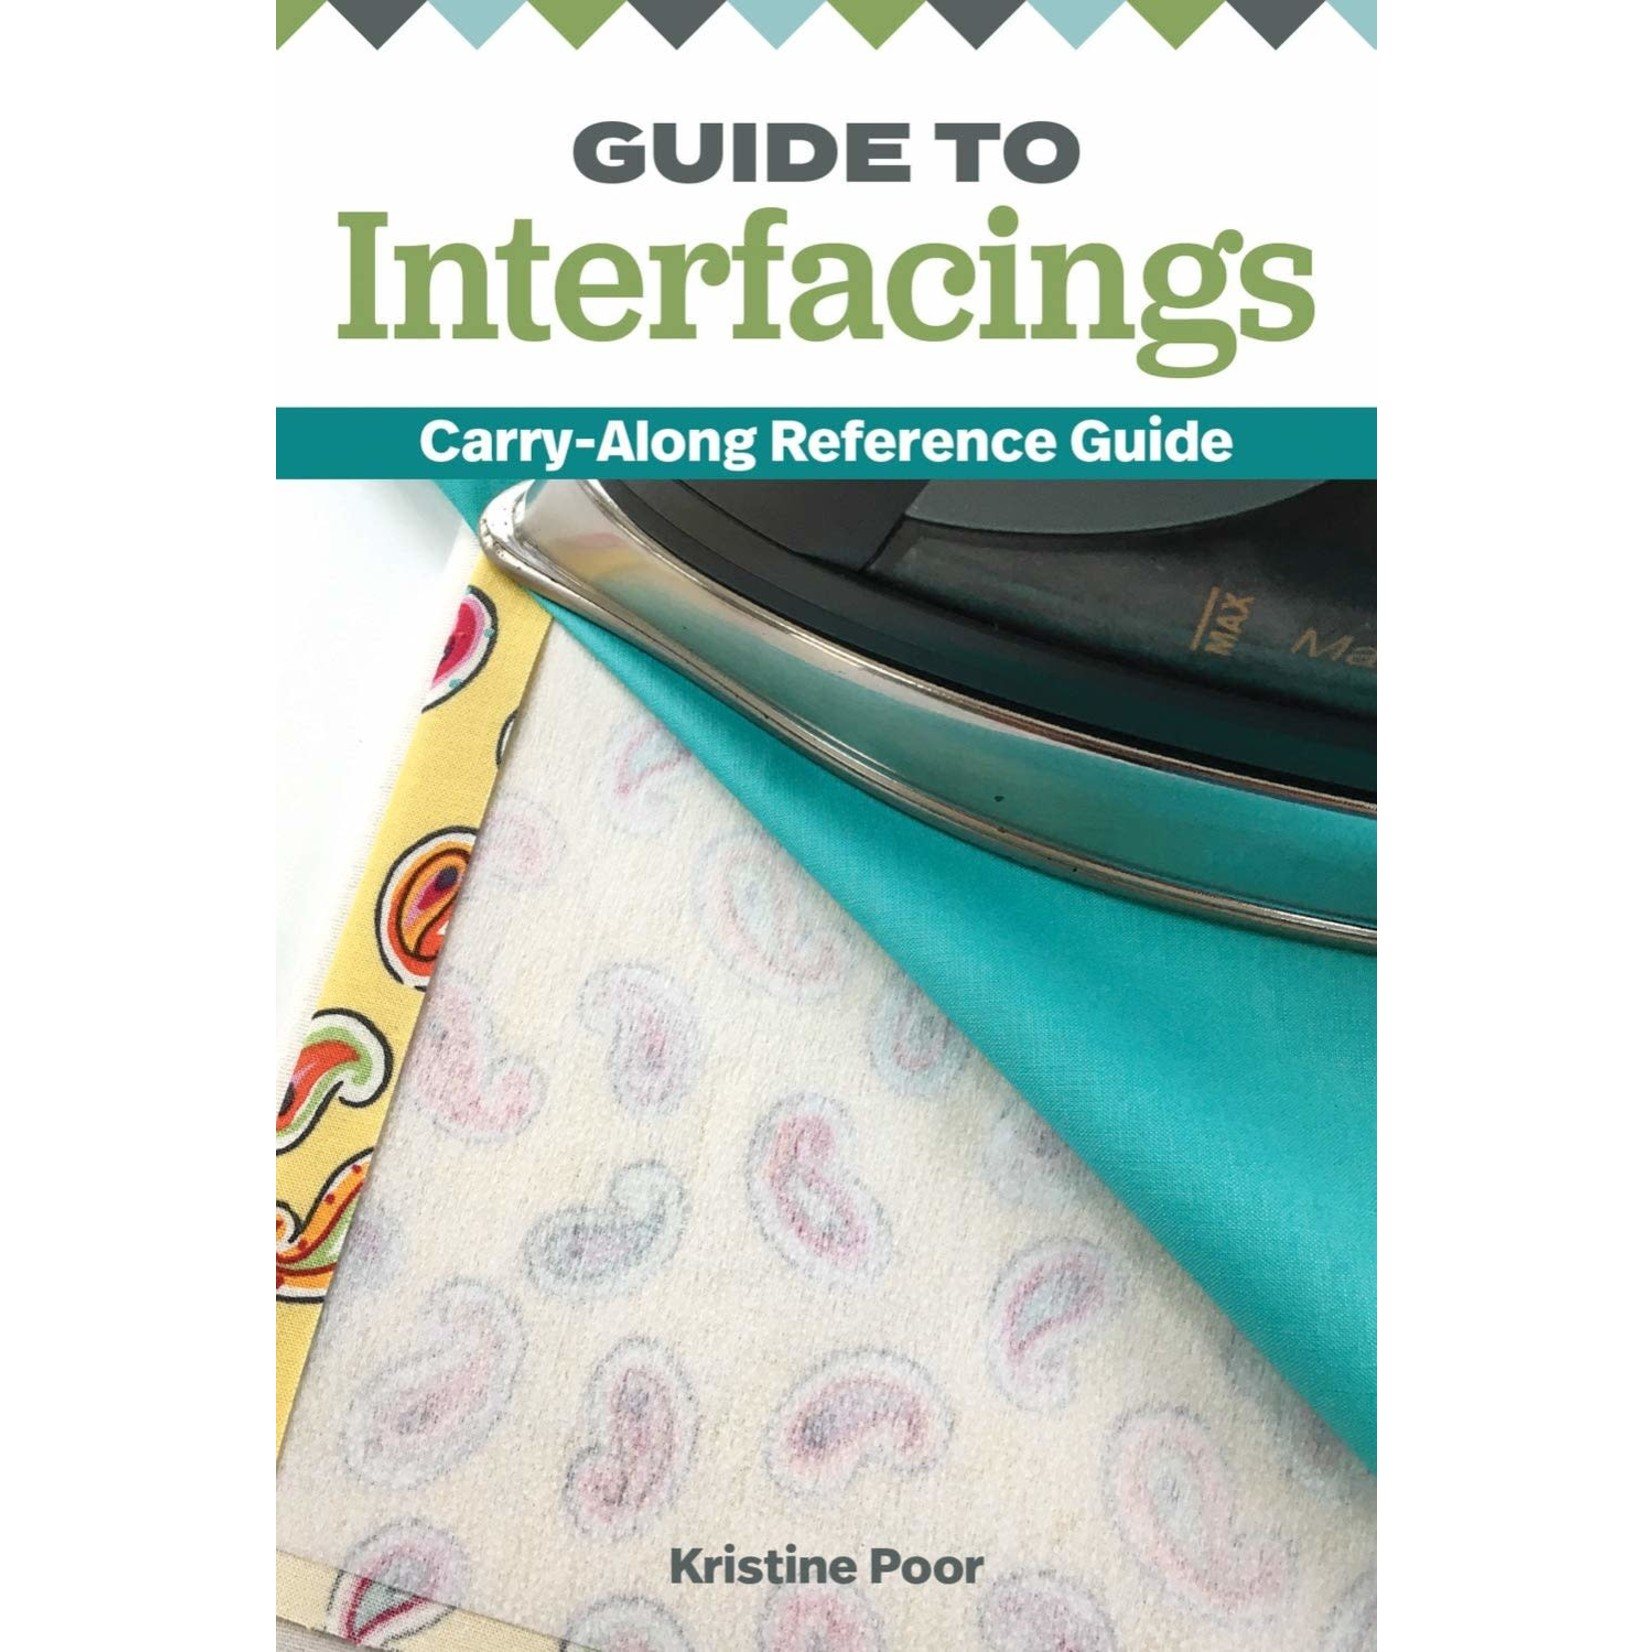 LANDAUER PUBLISHING Guide to Interfacings: Carry-along Reference Guide (Landauer) 4X6""